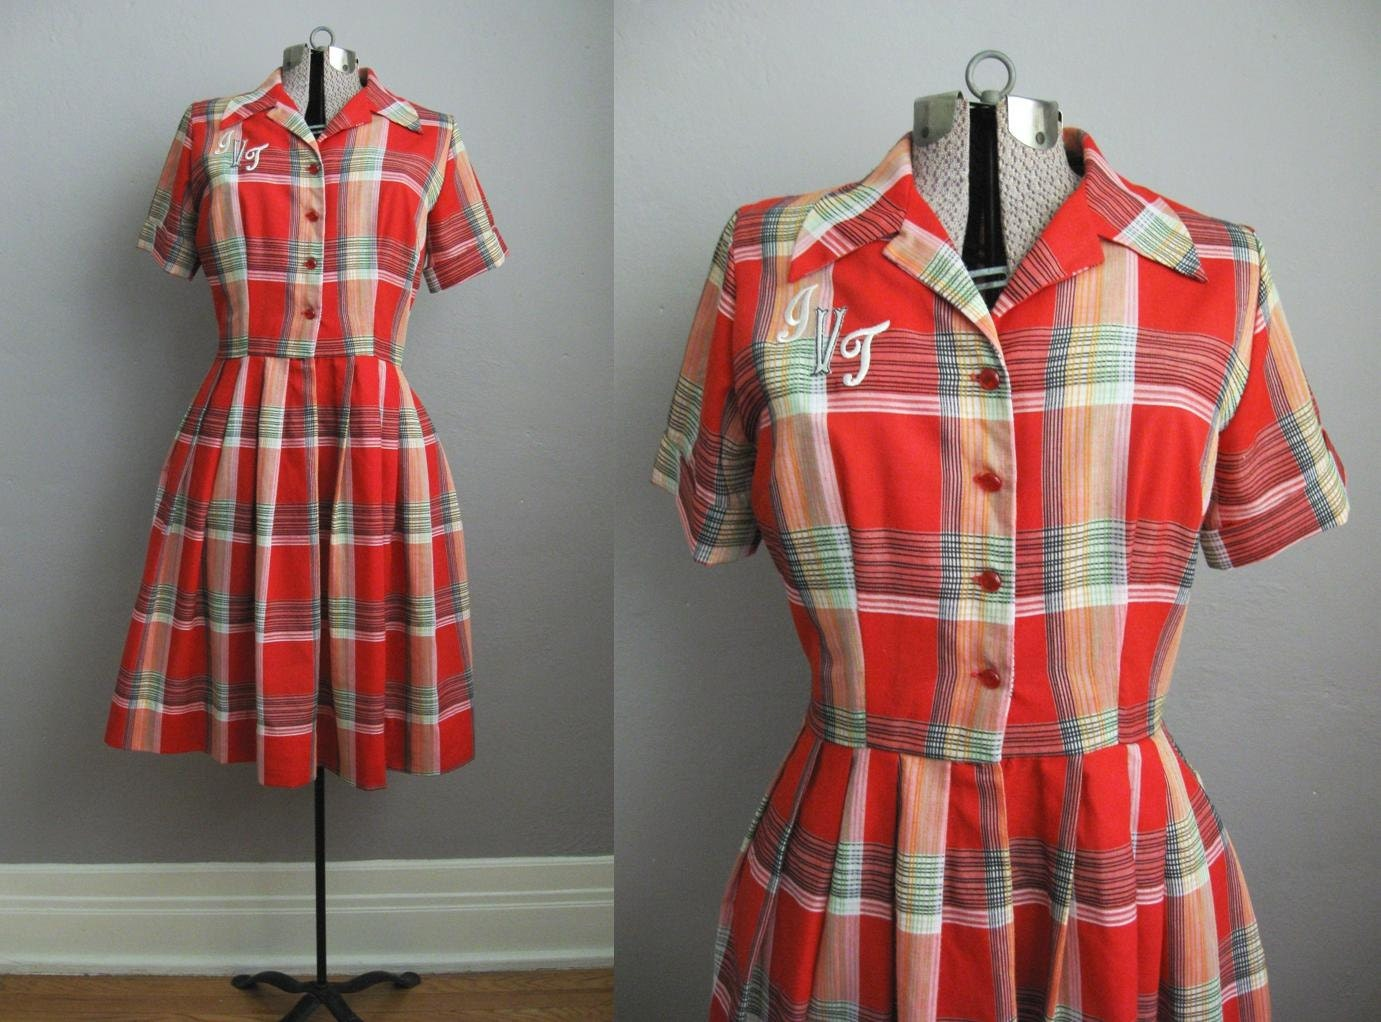 50s Dress / 1950s Shirtwaist Dress / Coral Red Plaid Cotton Dress